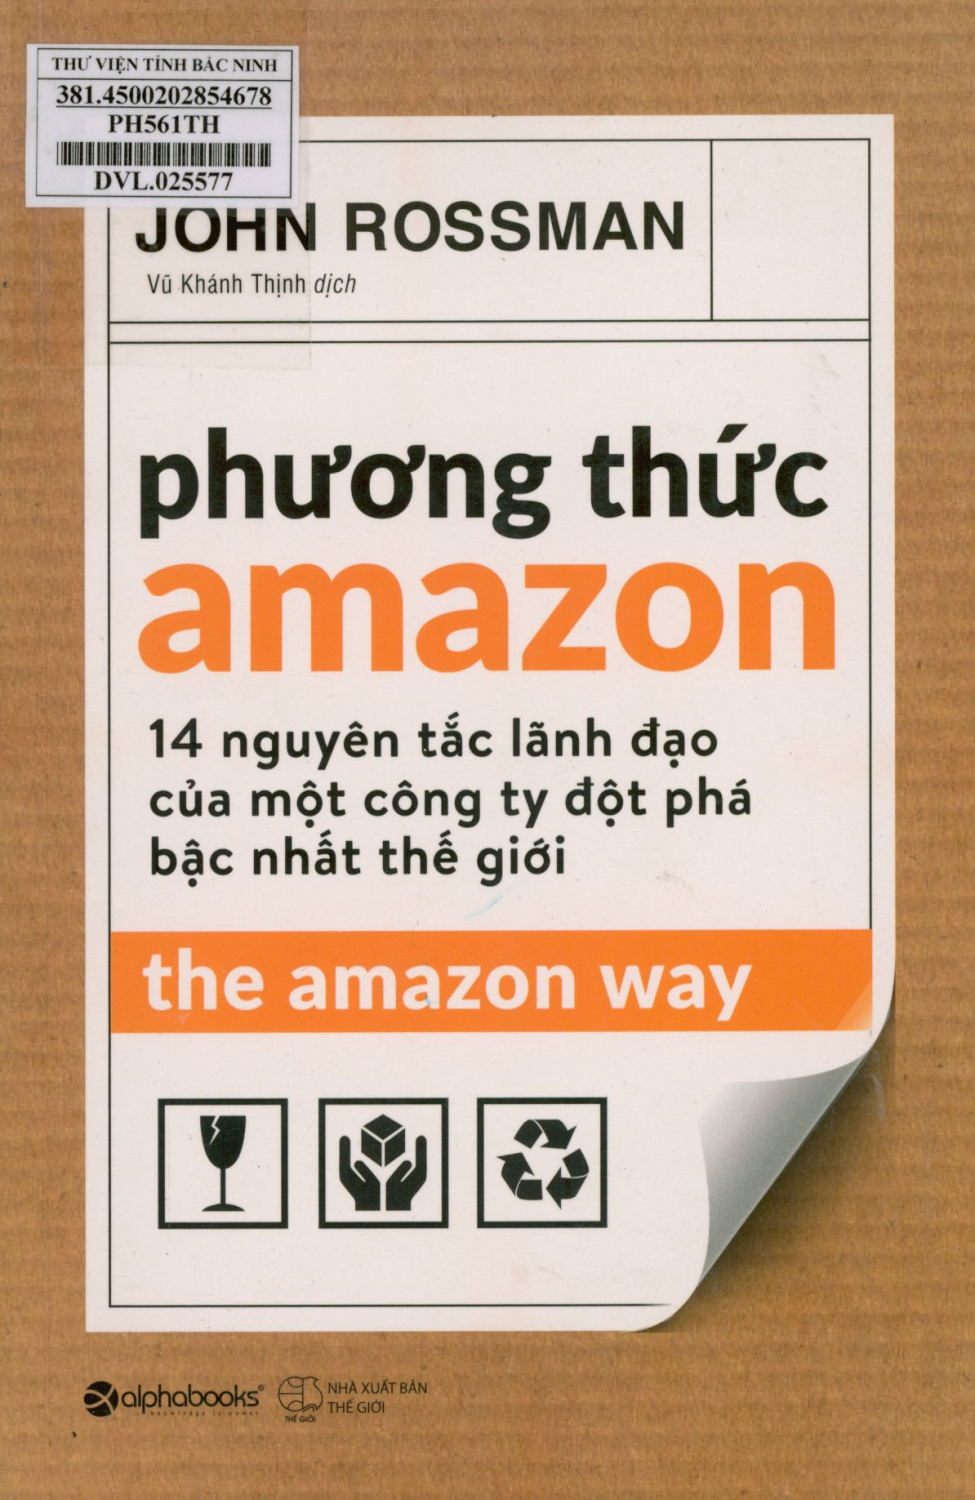 Phương thức Amazon = The Amazon way